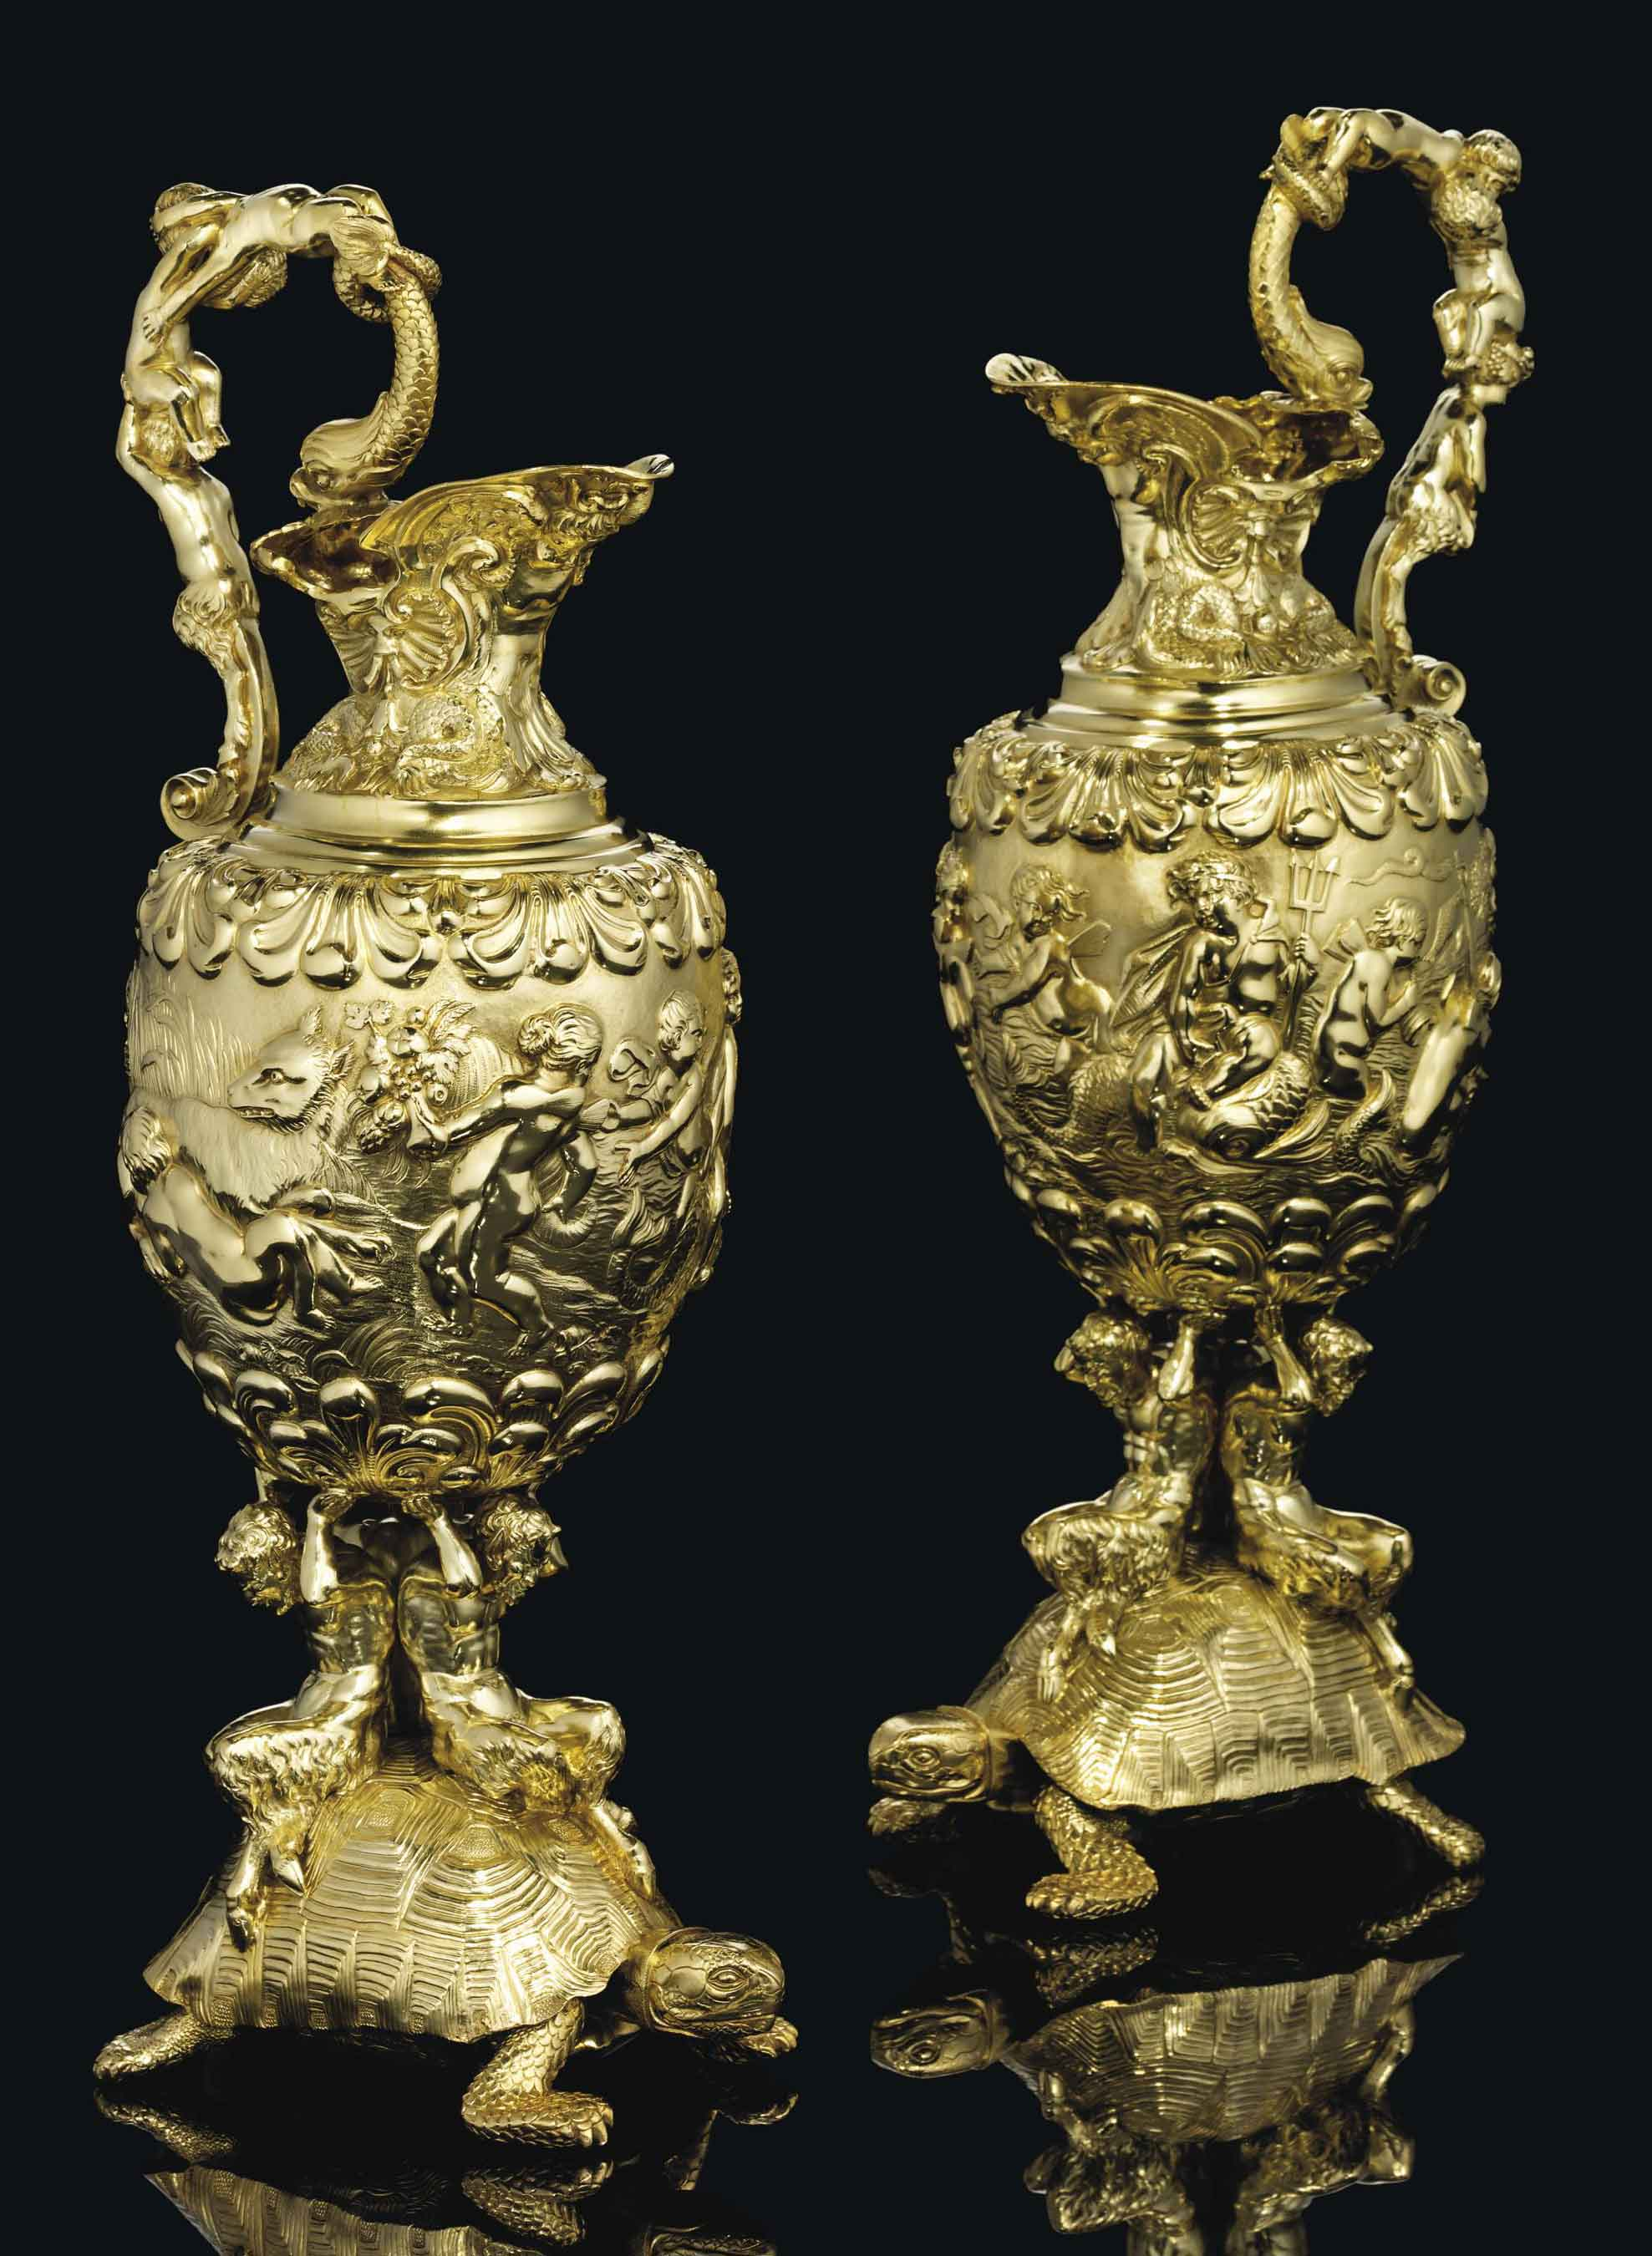 A PAIR OF GEORGE IV SILVER-GILT EWERS